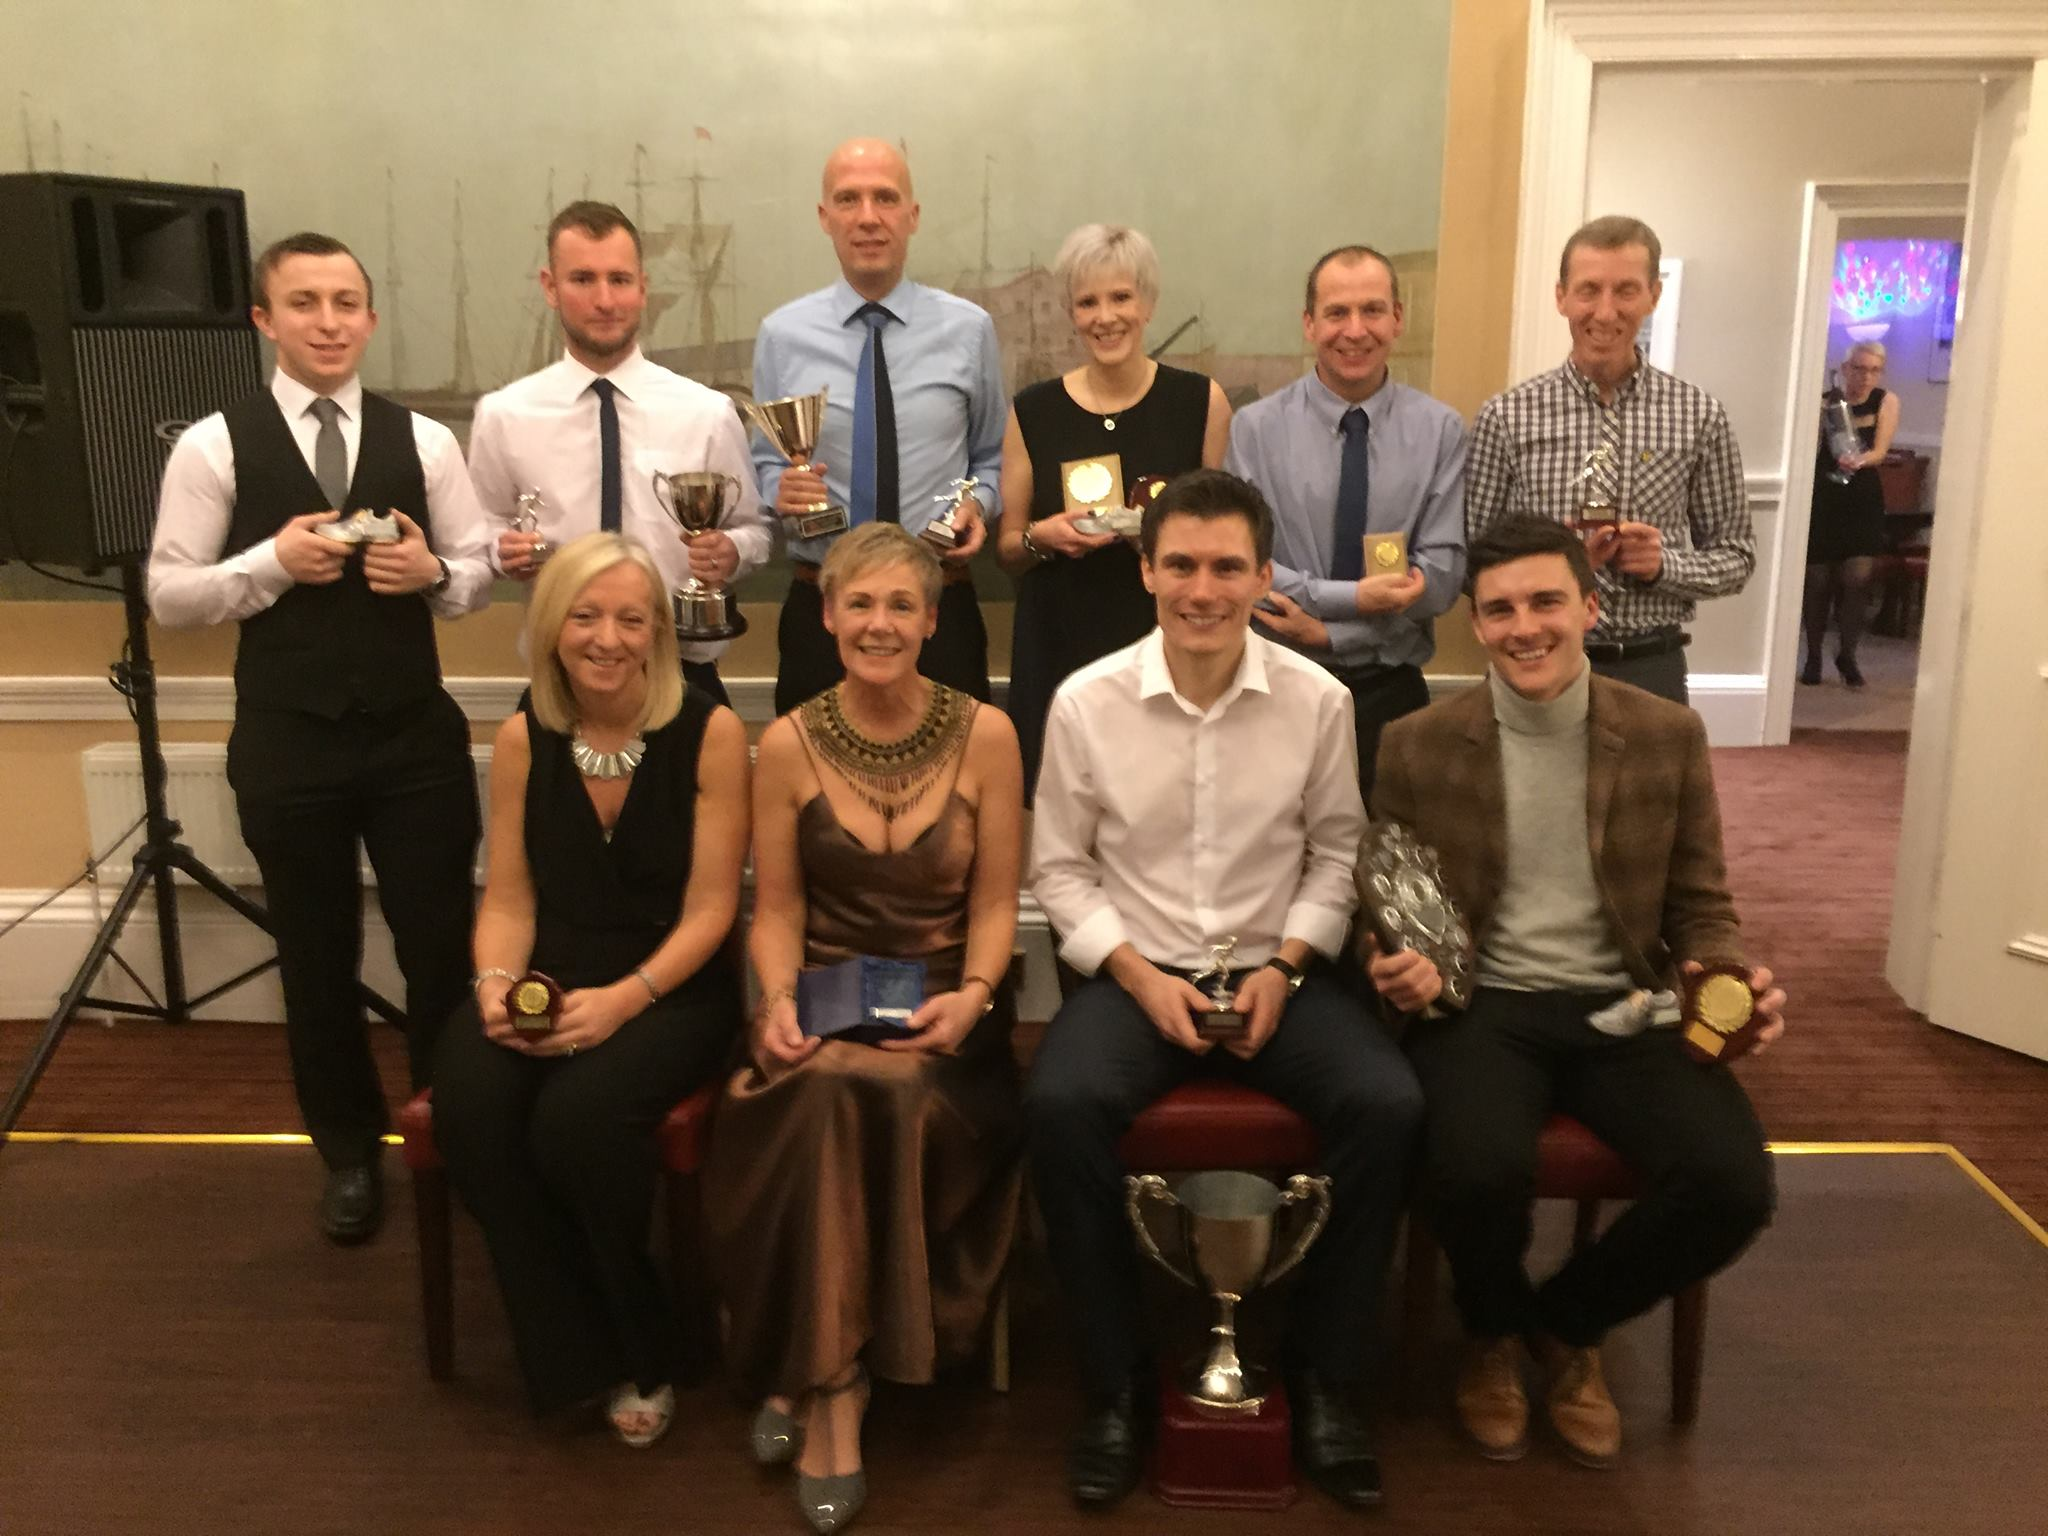 Annual Award Winners 2015